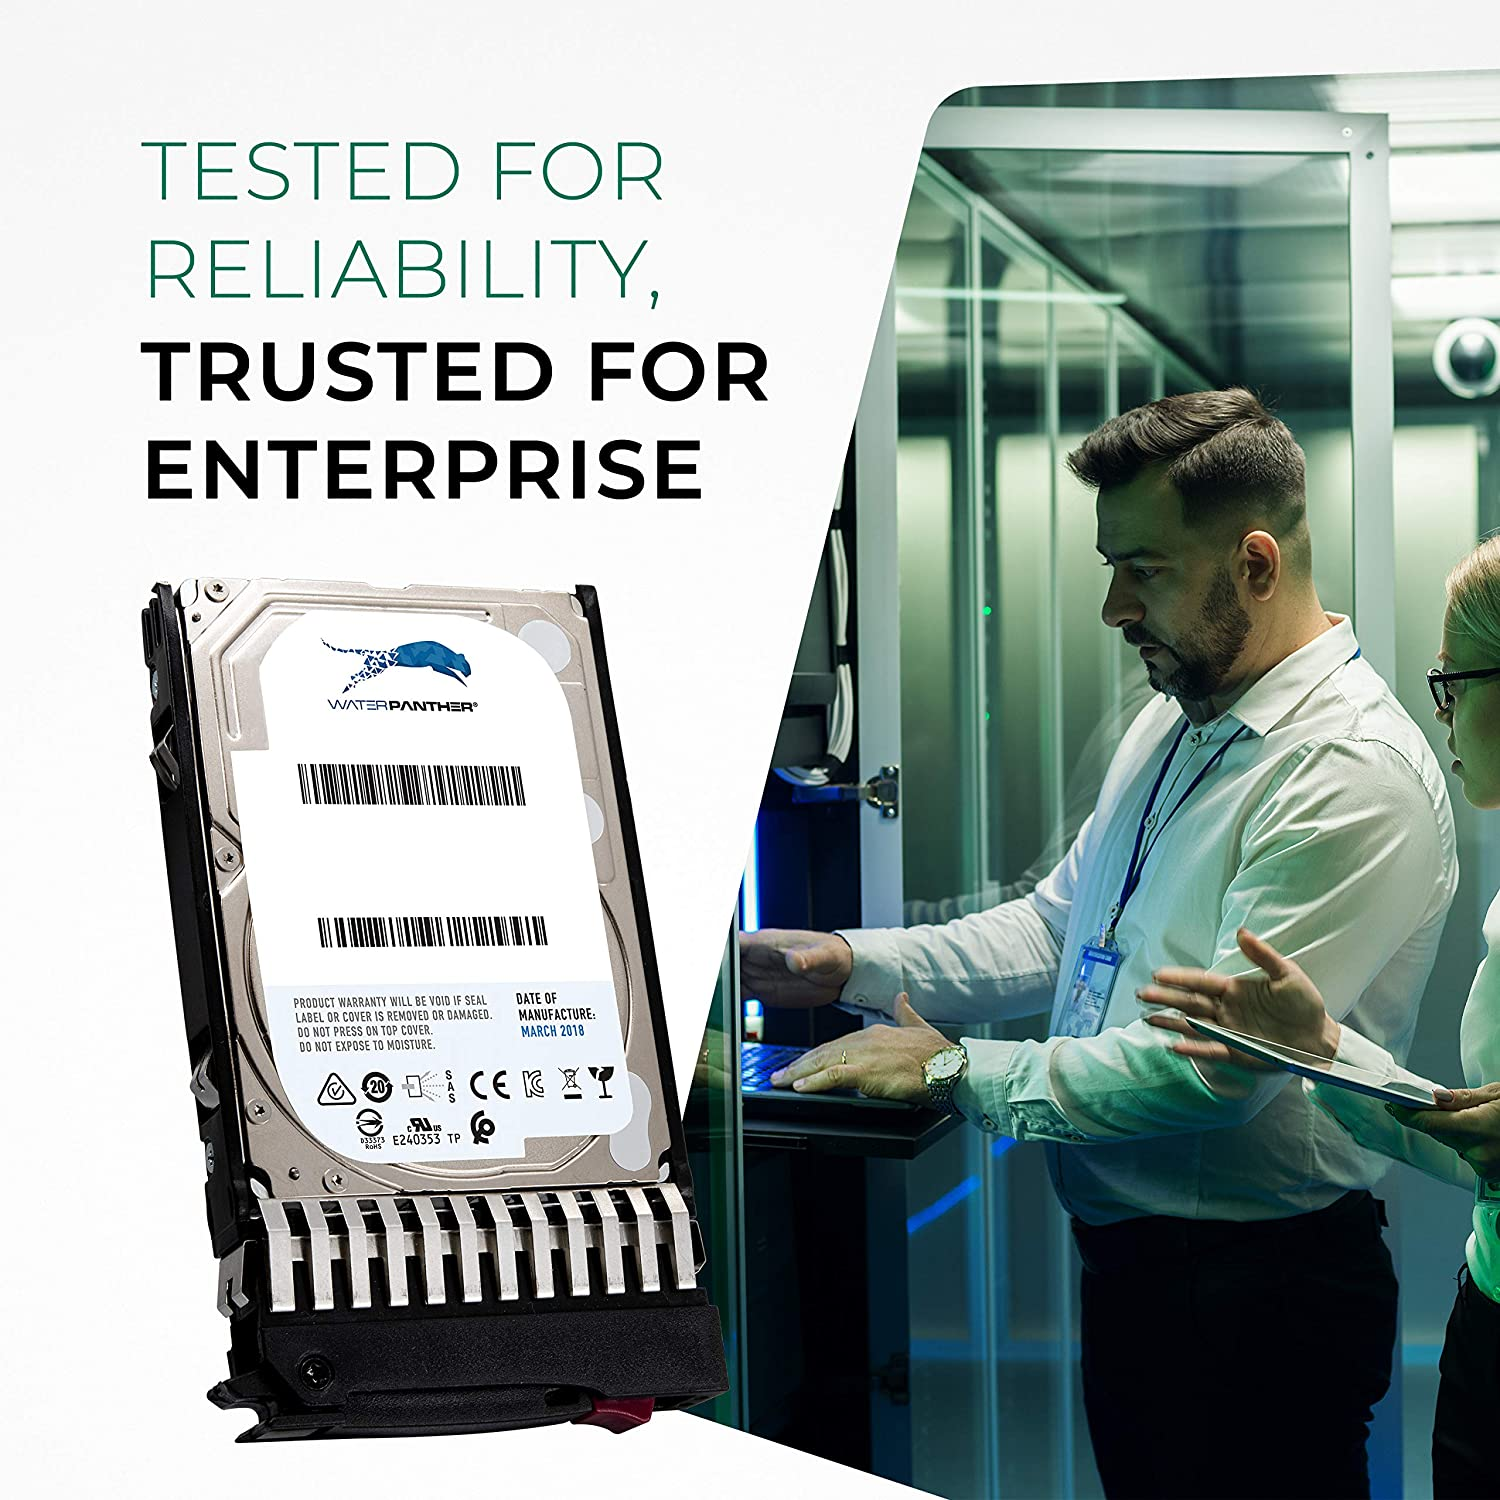 Enterprise Data Center Hard Drive in HPE G7 Tray Compatible with 768788-004 785079-B21 785079-S21 785415-001 EG1200JEHMC 1.2 TB 10K RPM 512n SAS 12Gb//s 2.5-Inch HDD for HP Proliant Servers